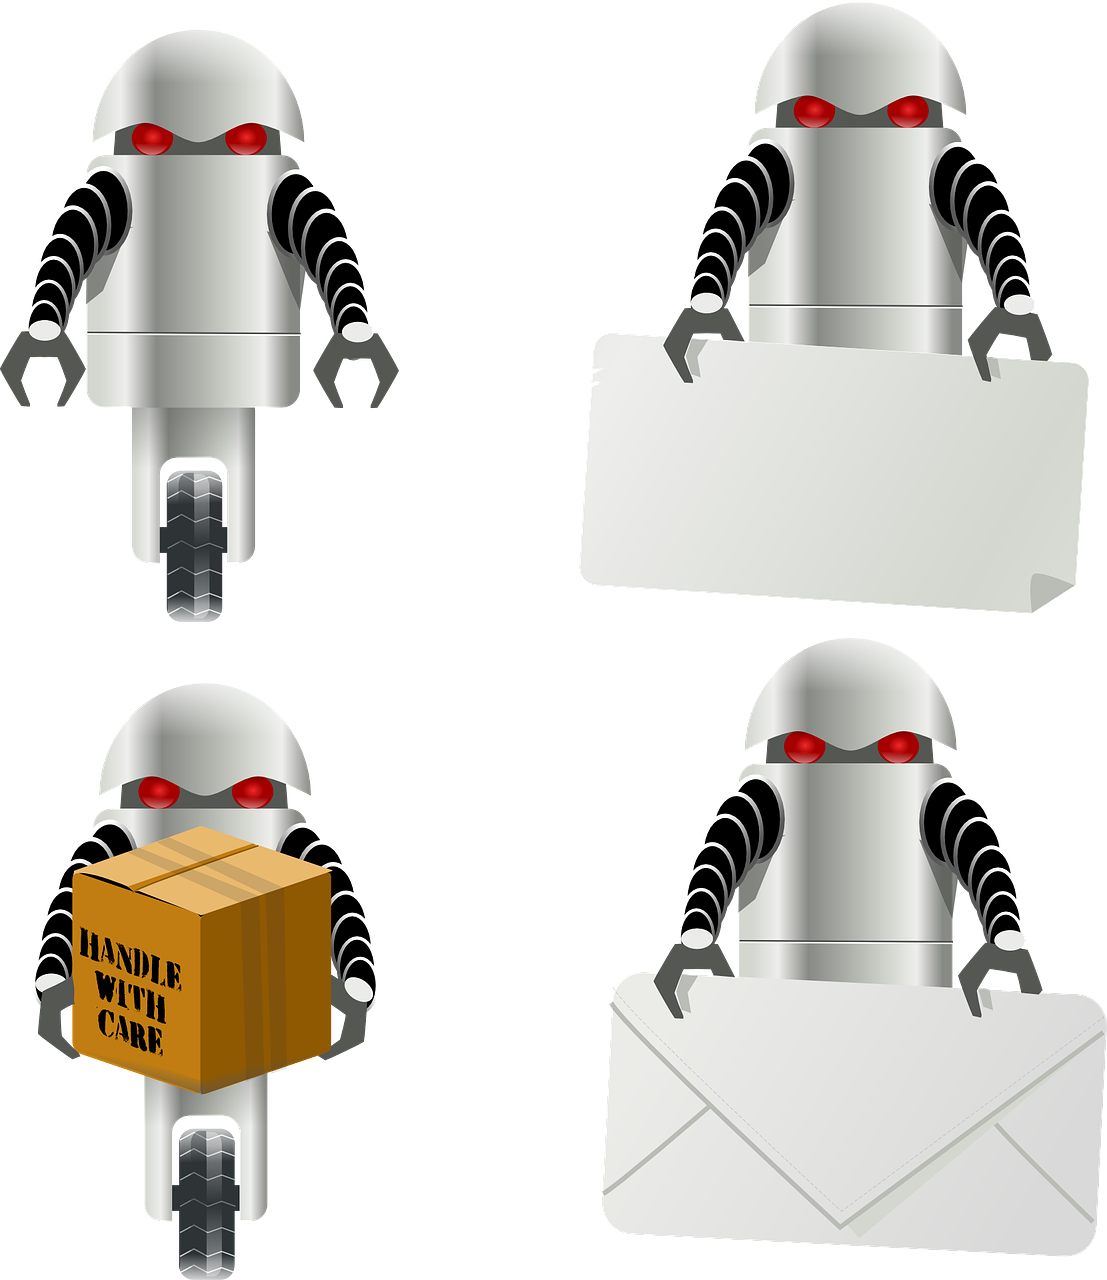 robot,delivery,letter,package,carry,cargo,worker,cyber,order,futuristic,postman,courier,controlled,free vector graphics,free pictures, free photos, free images, royalty free, free illustrations, public domain